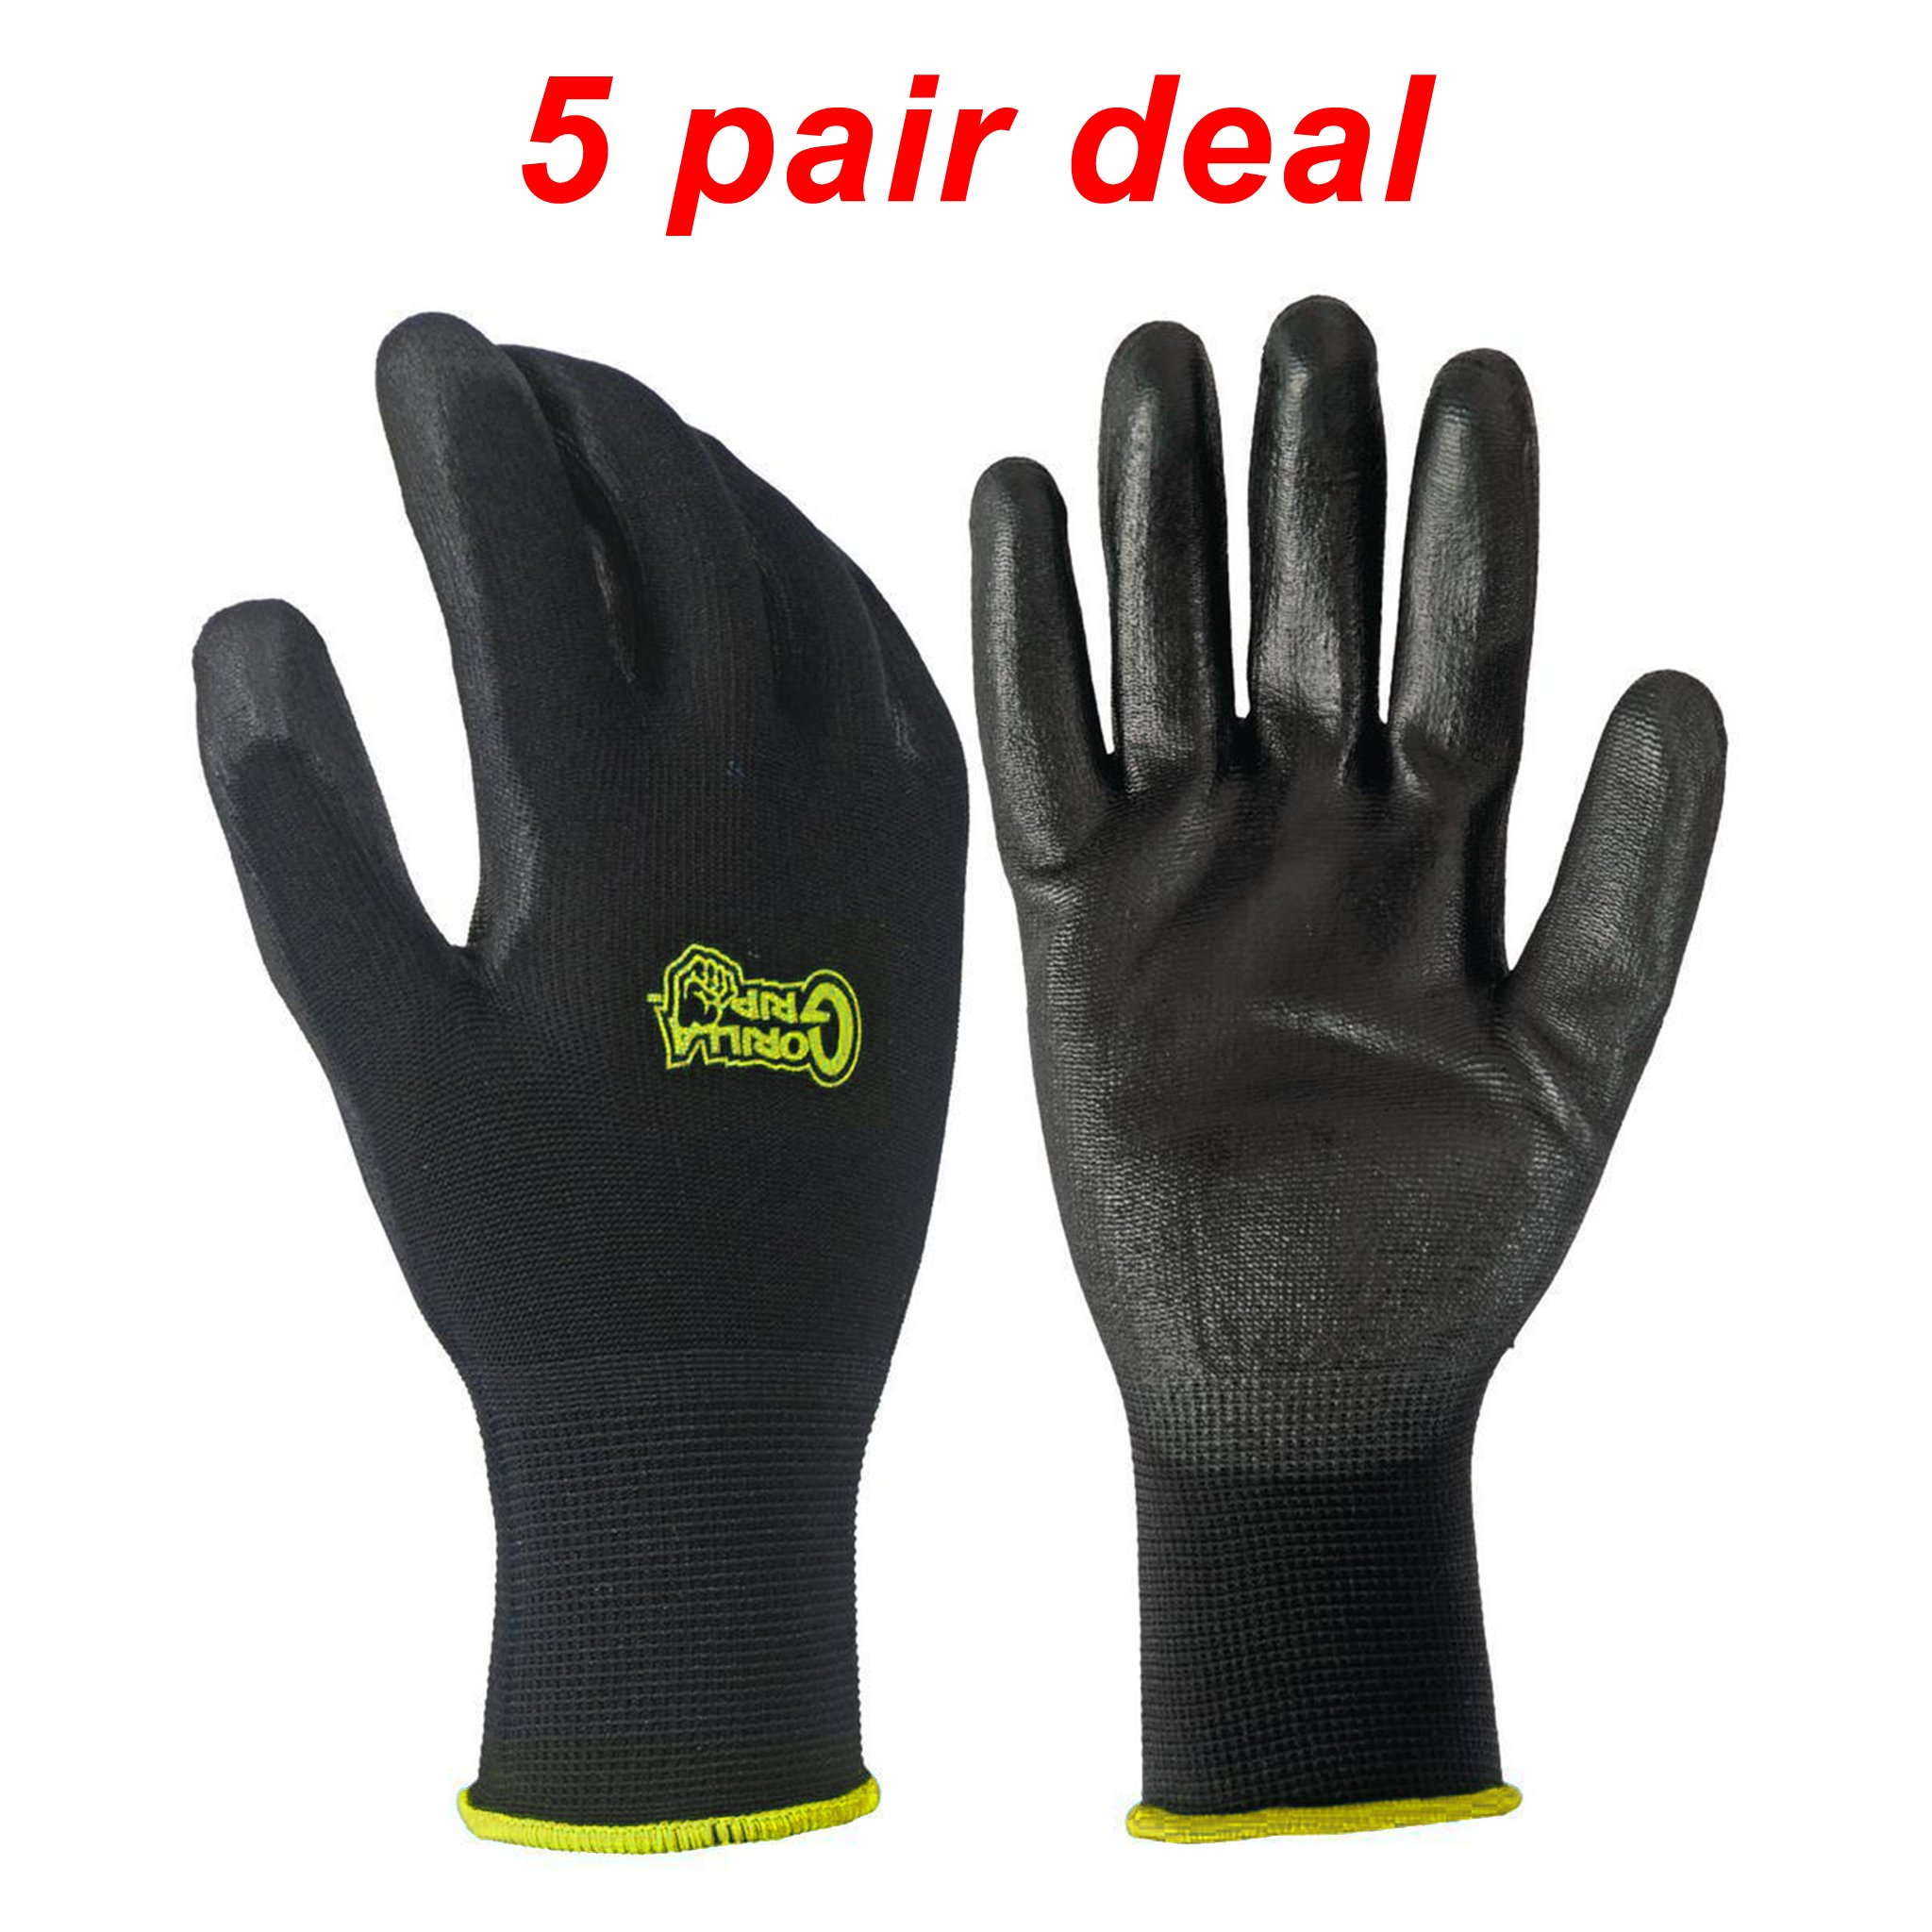 5 PACK Gorilla Grip Gloves - Medium by Grease Monkey Gorilla Grip (Image #1)